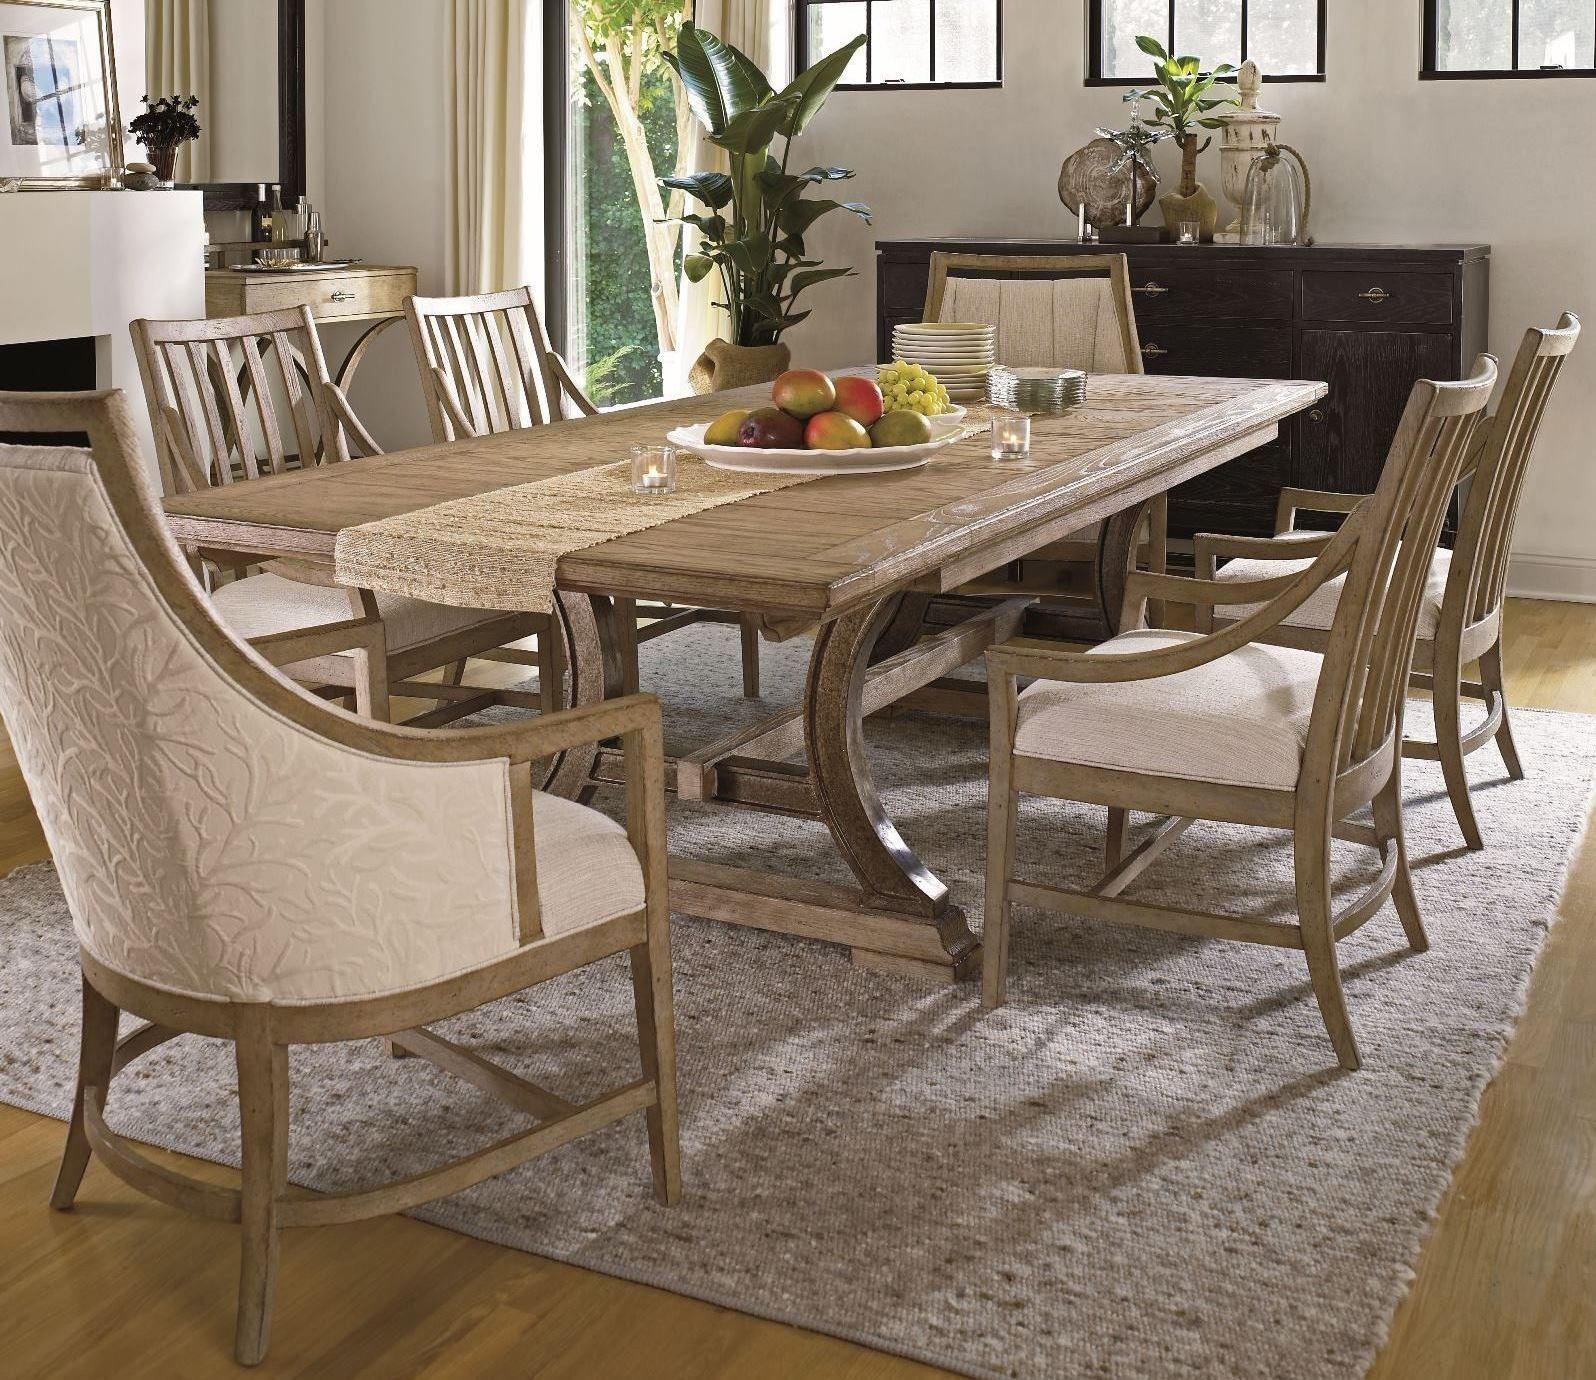 Dining And Living Room Furniture: Coastal Living Resort Weathered Pier Shelter Bay Dining